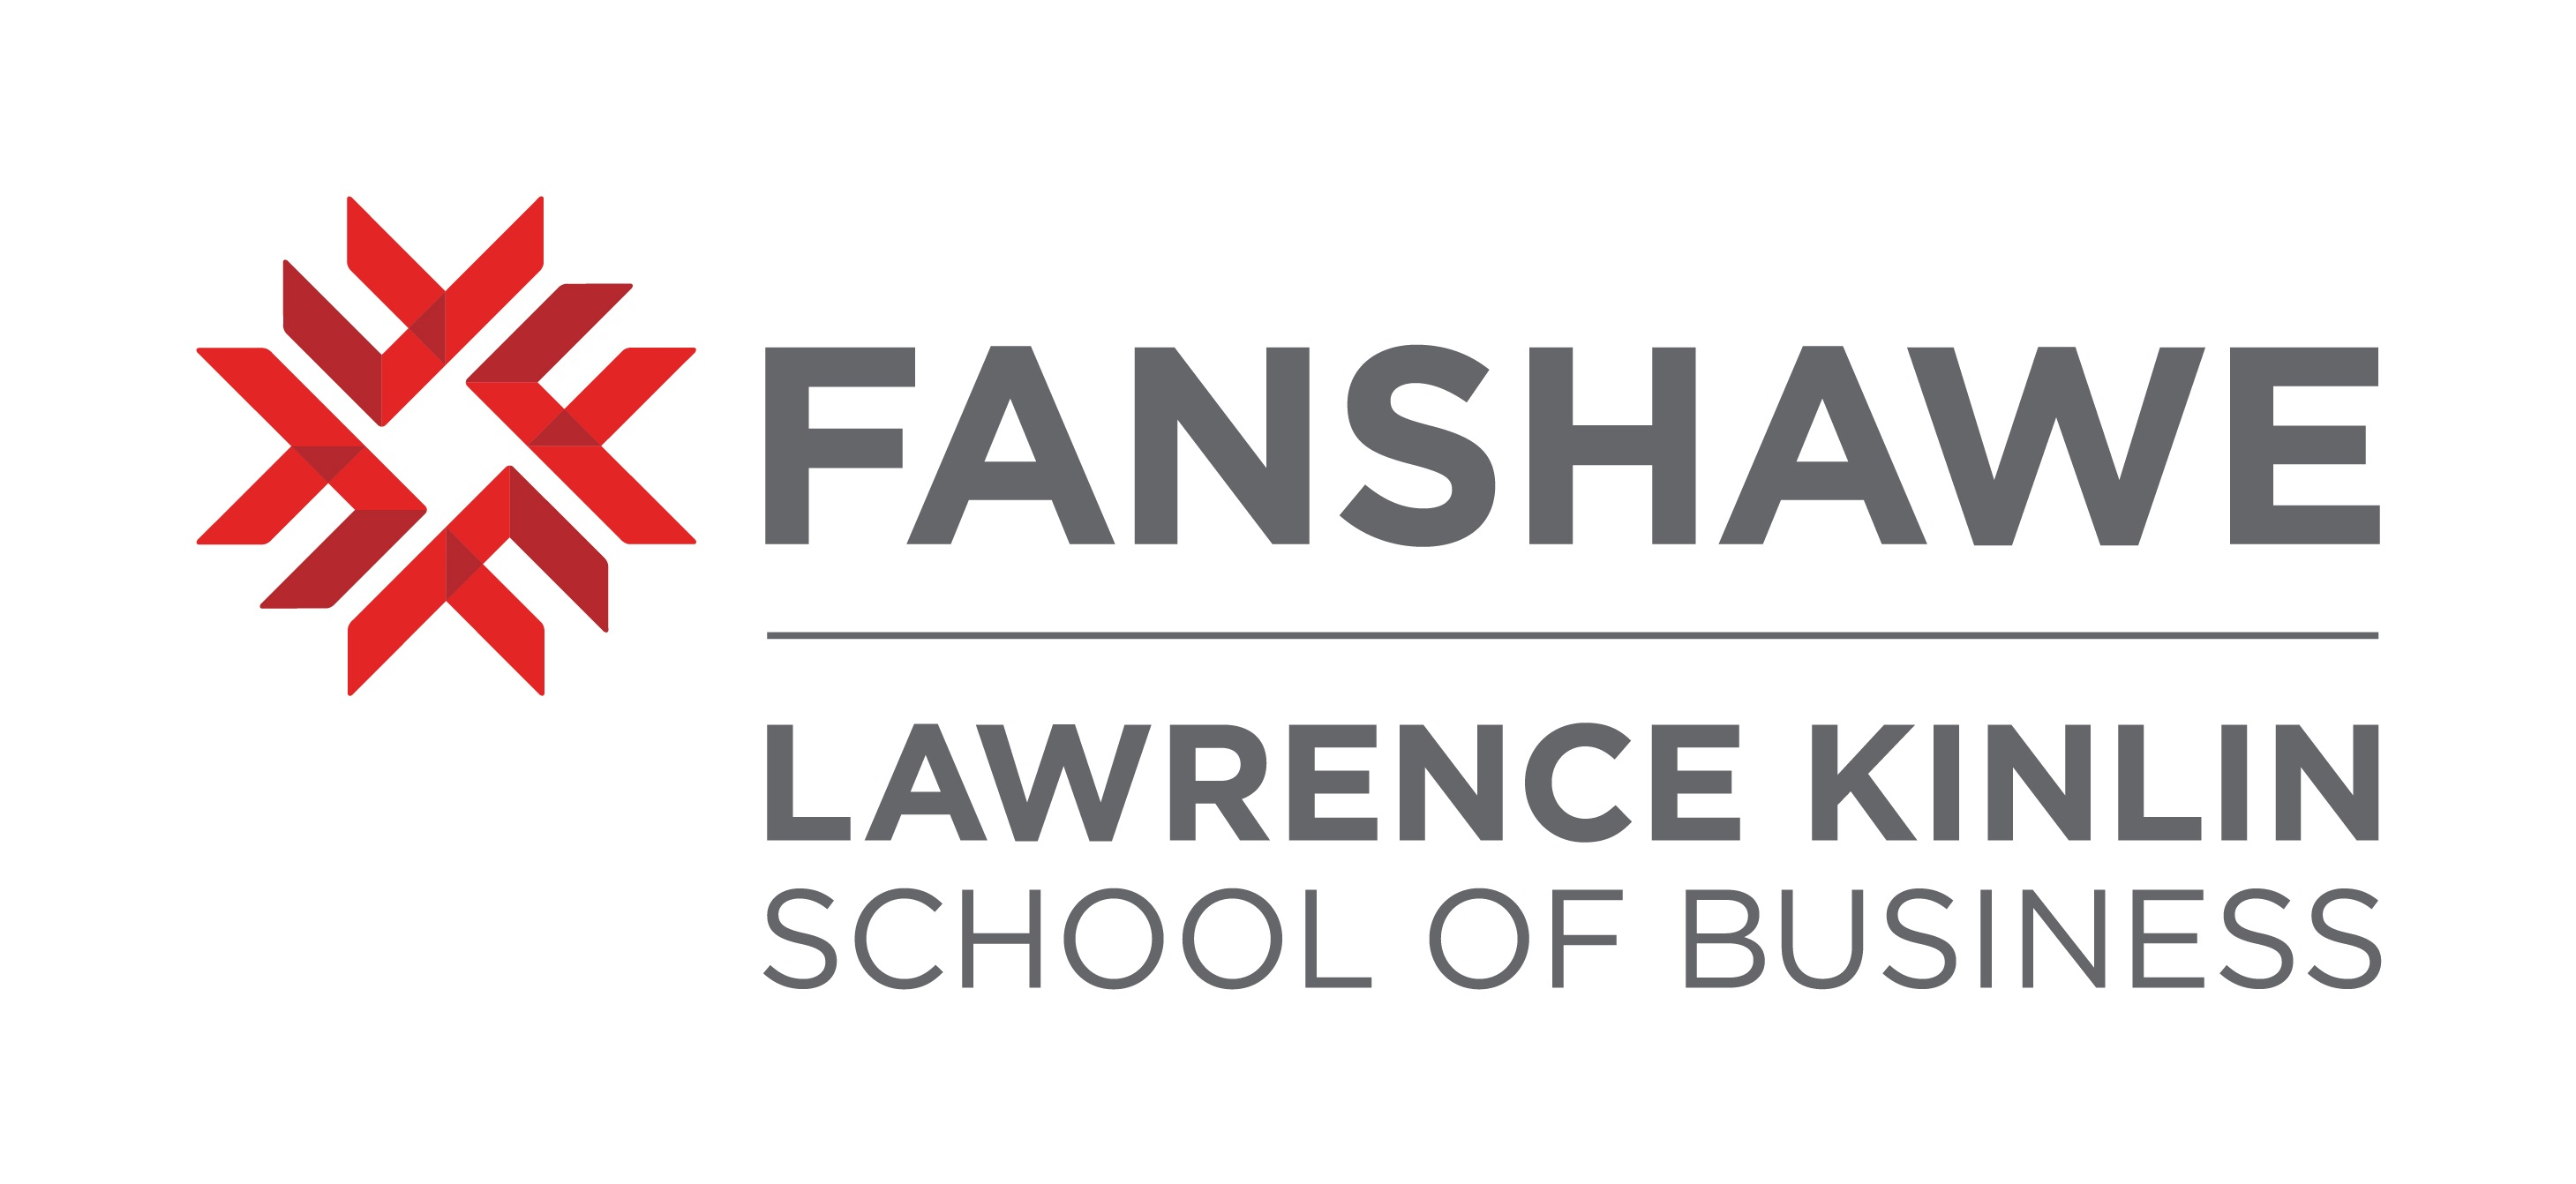 Lawrence Kinlin School of Business at Fanshawe College